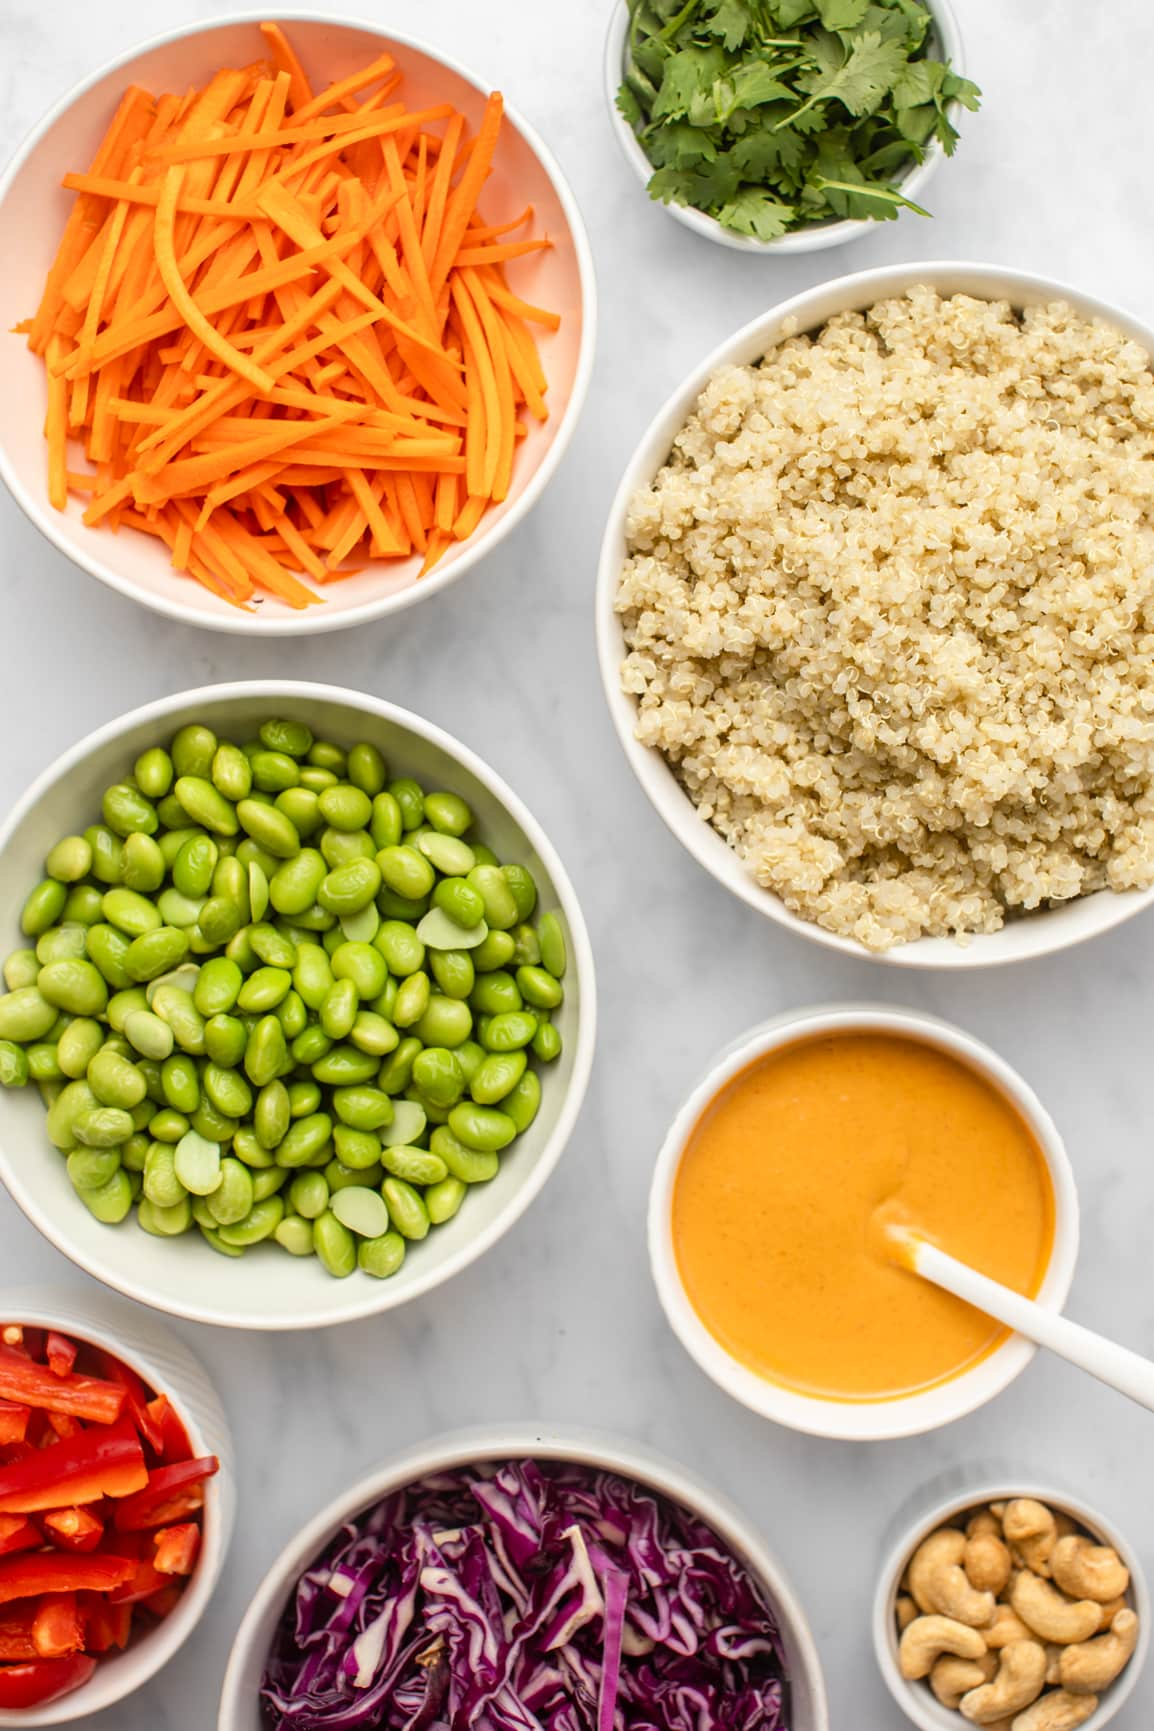 ingredients for rainbow quinoa salad in small white bowls on marble background